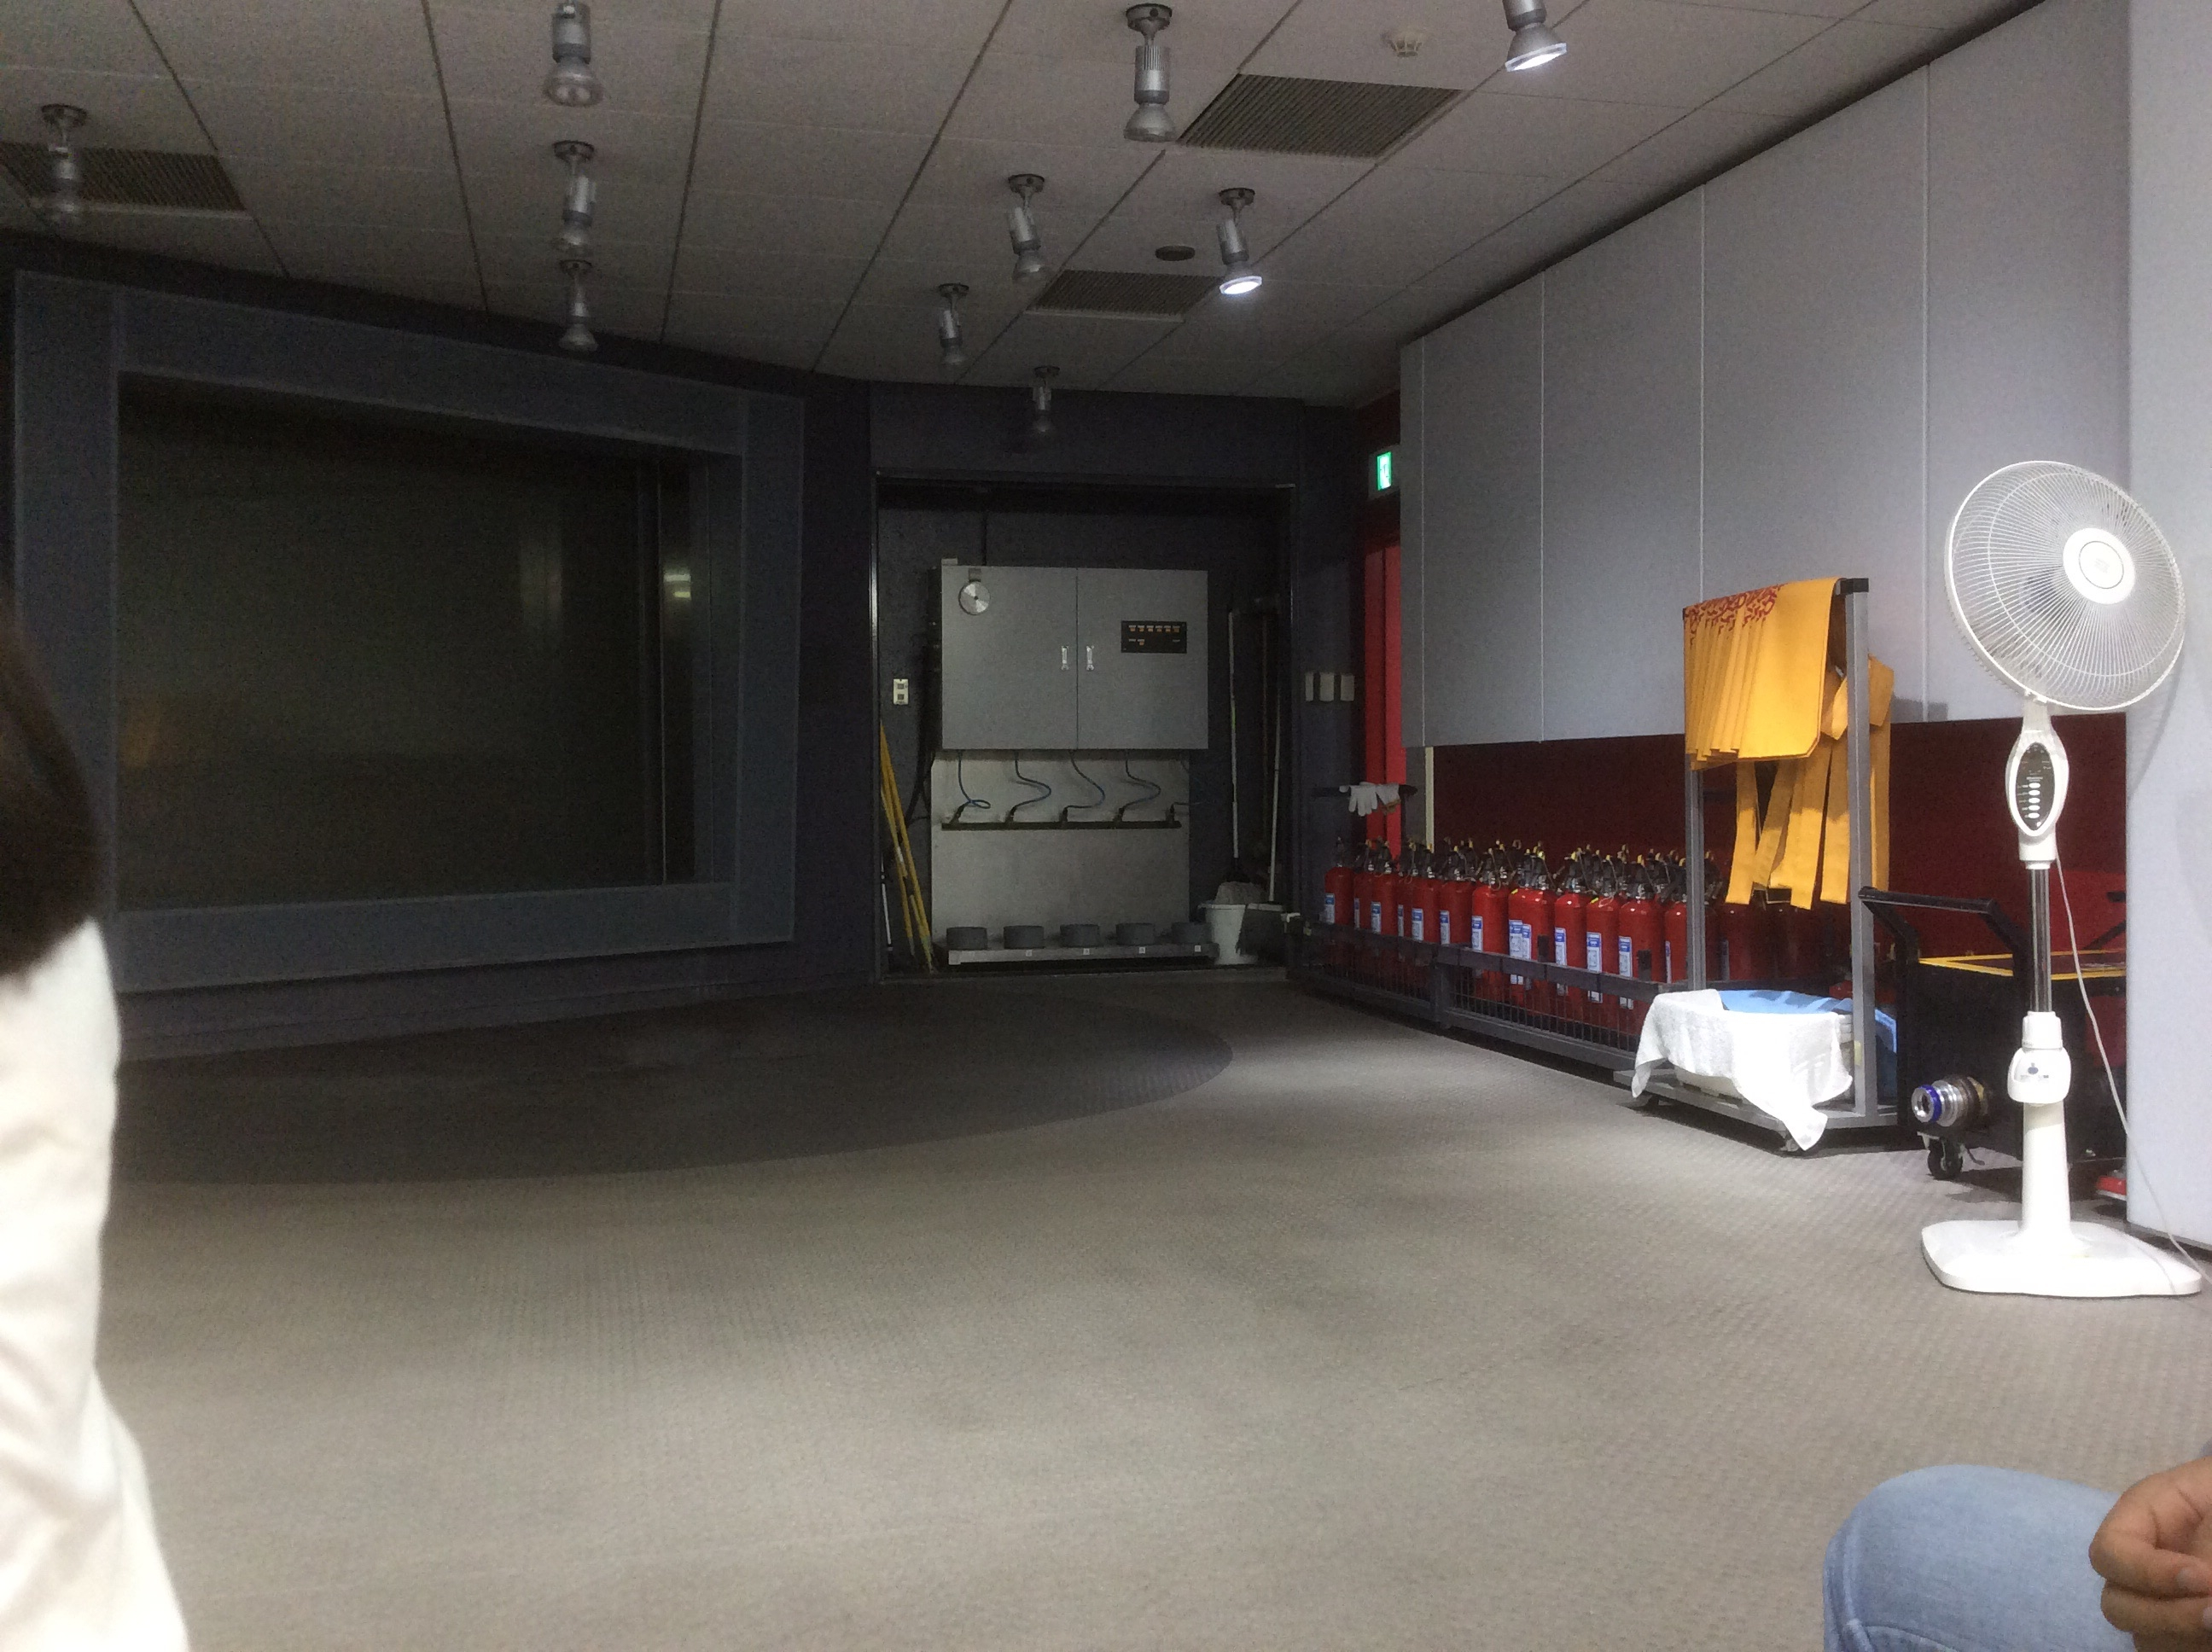 The fire safety room.